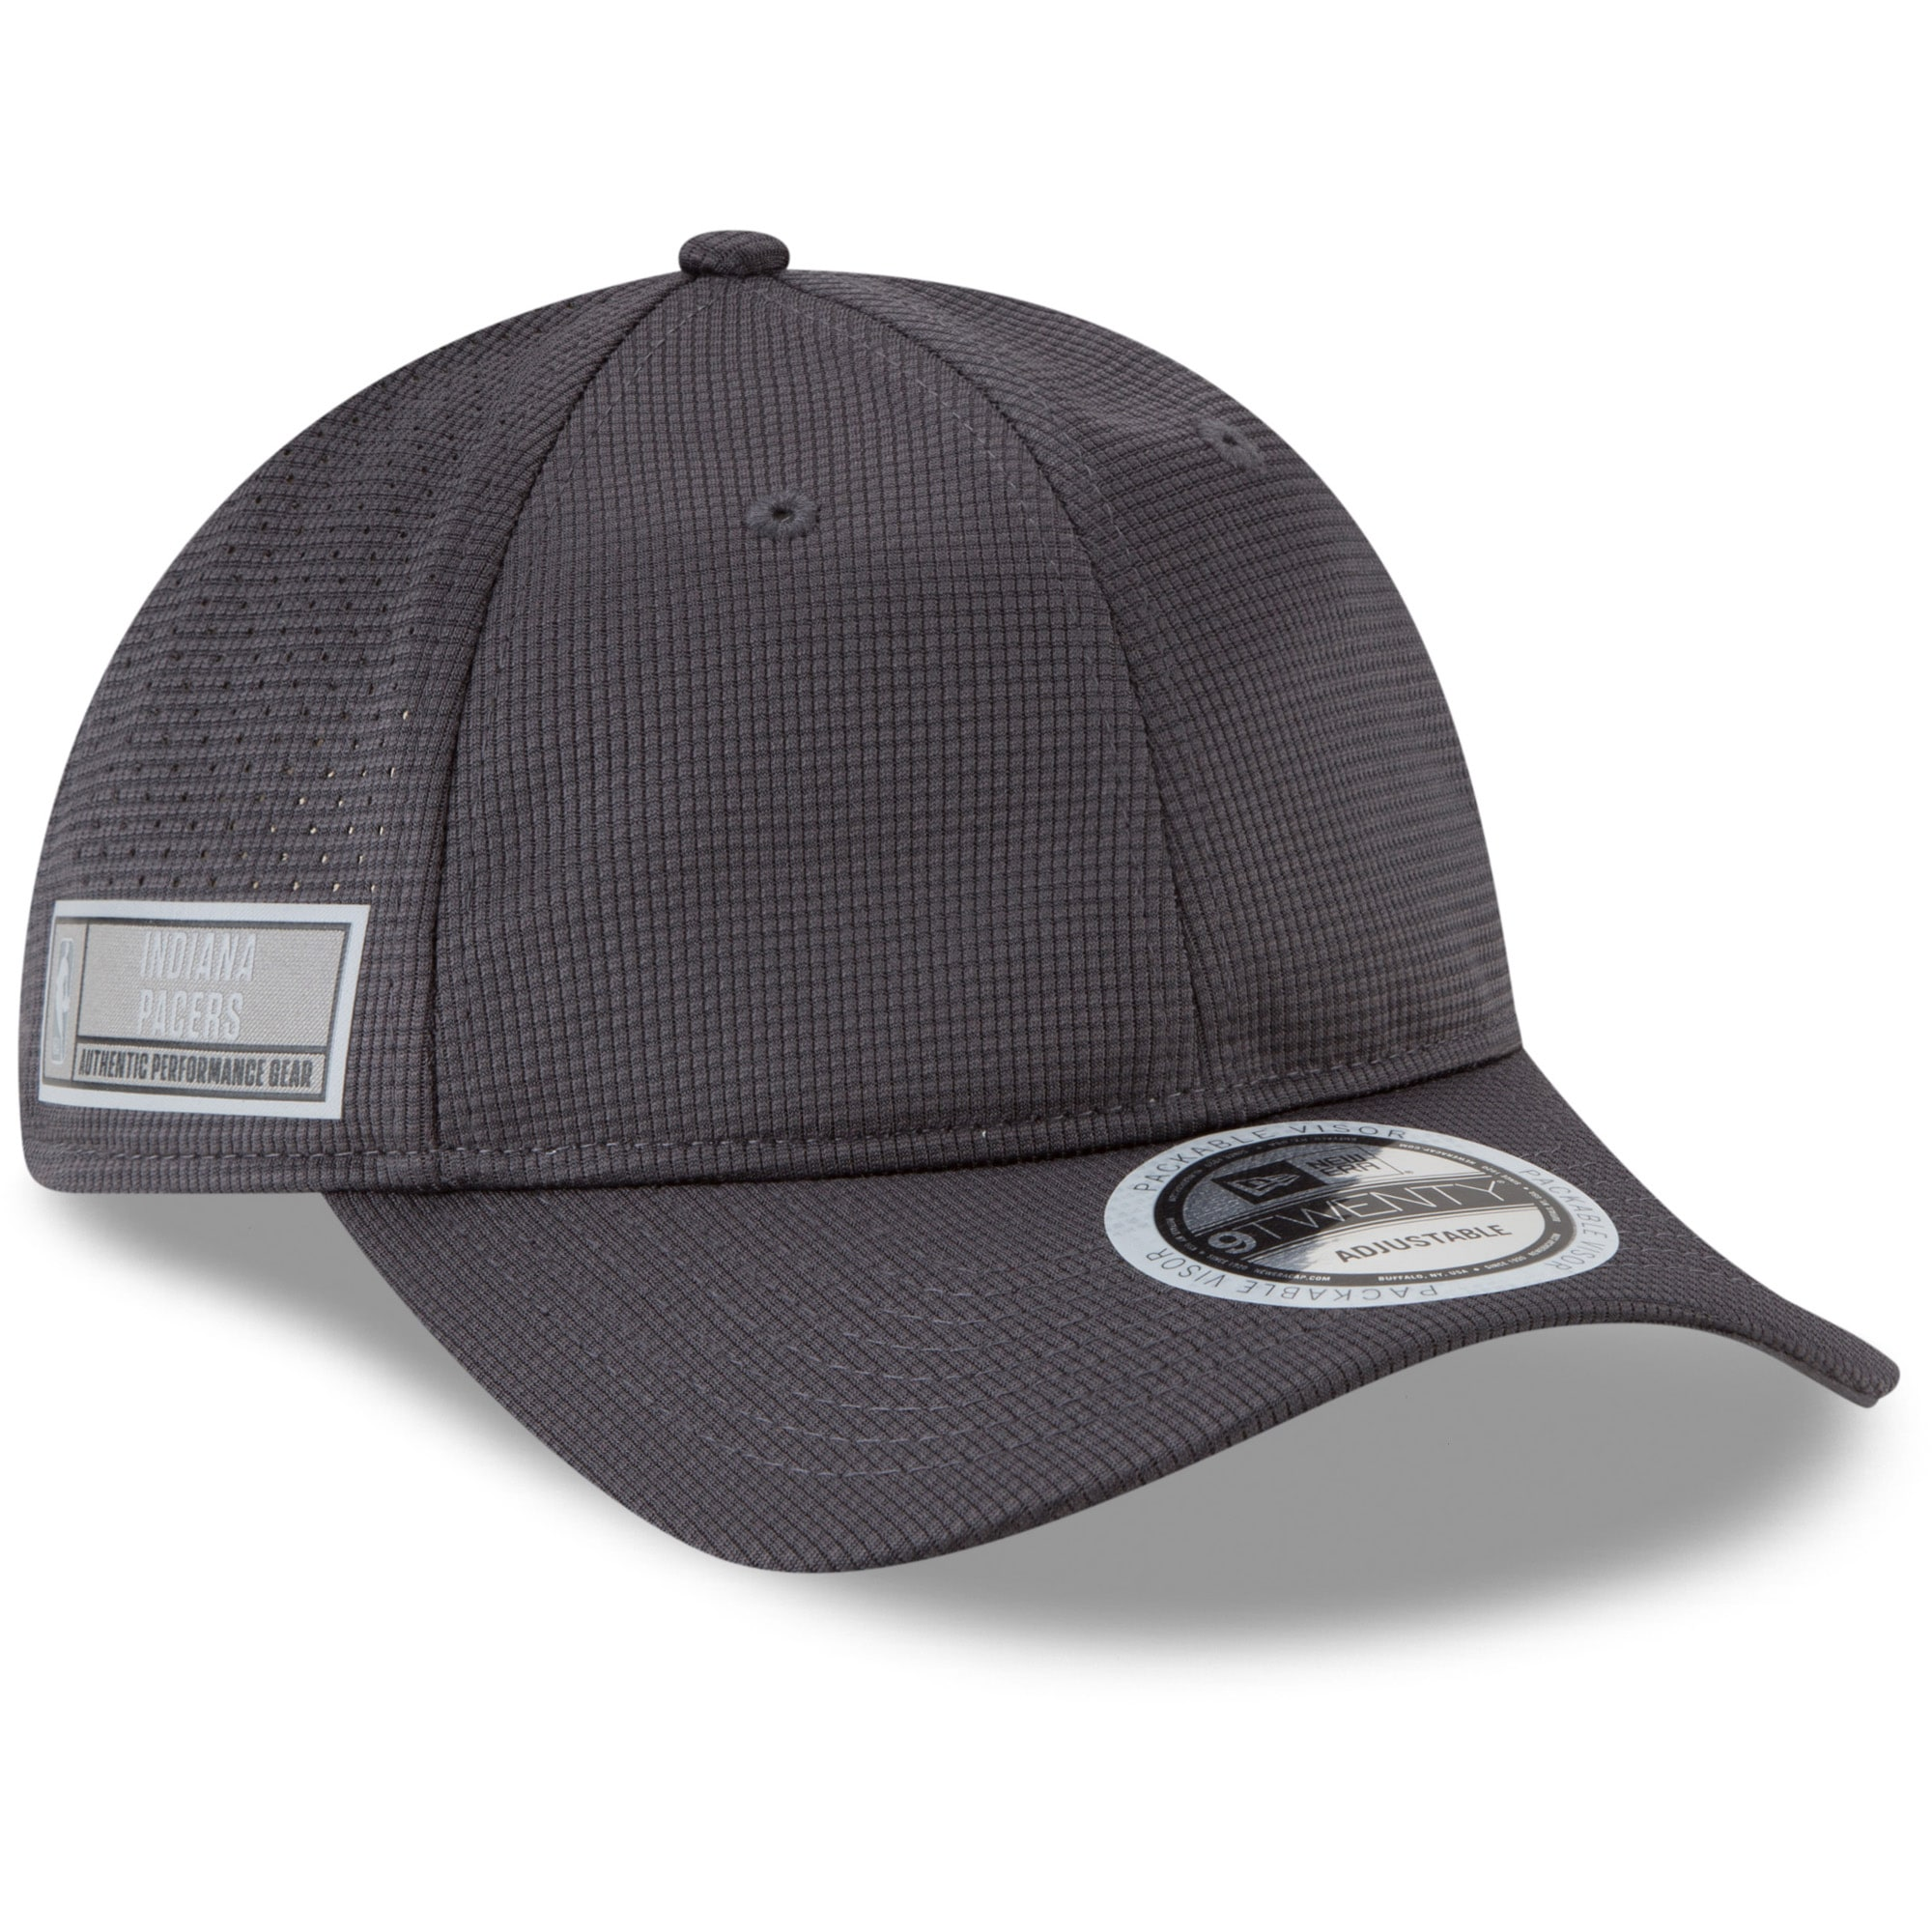 Indiana Pacers New Era Authentics Training 9TWENTY Adjustable Hat - Graphite